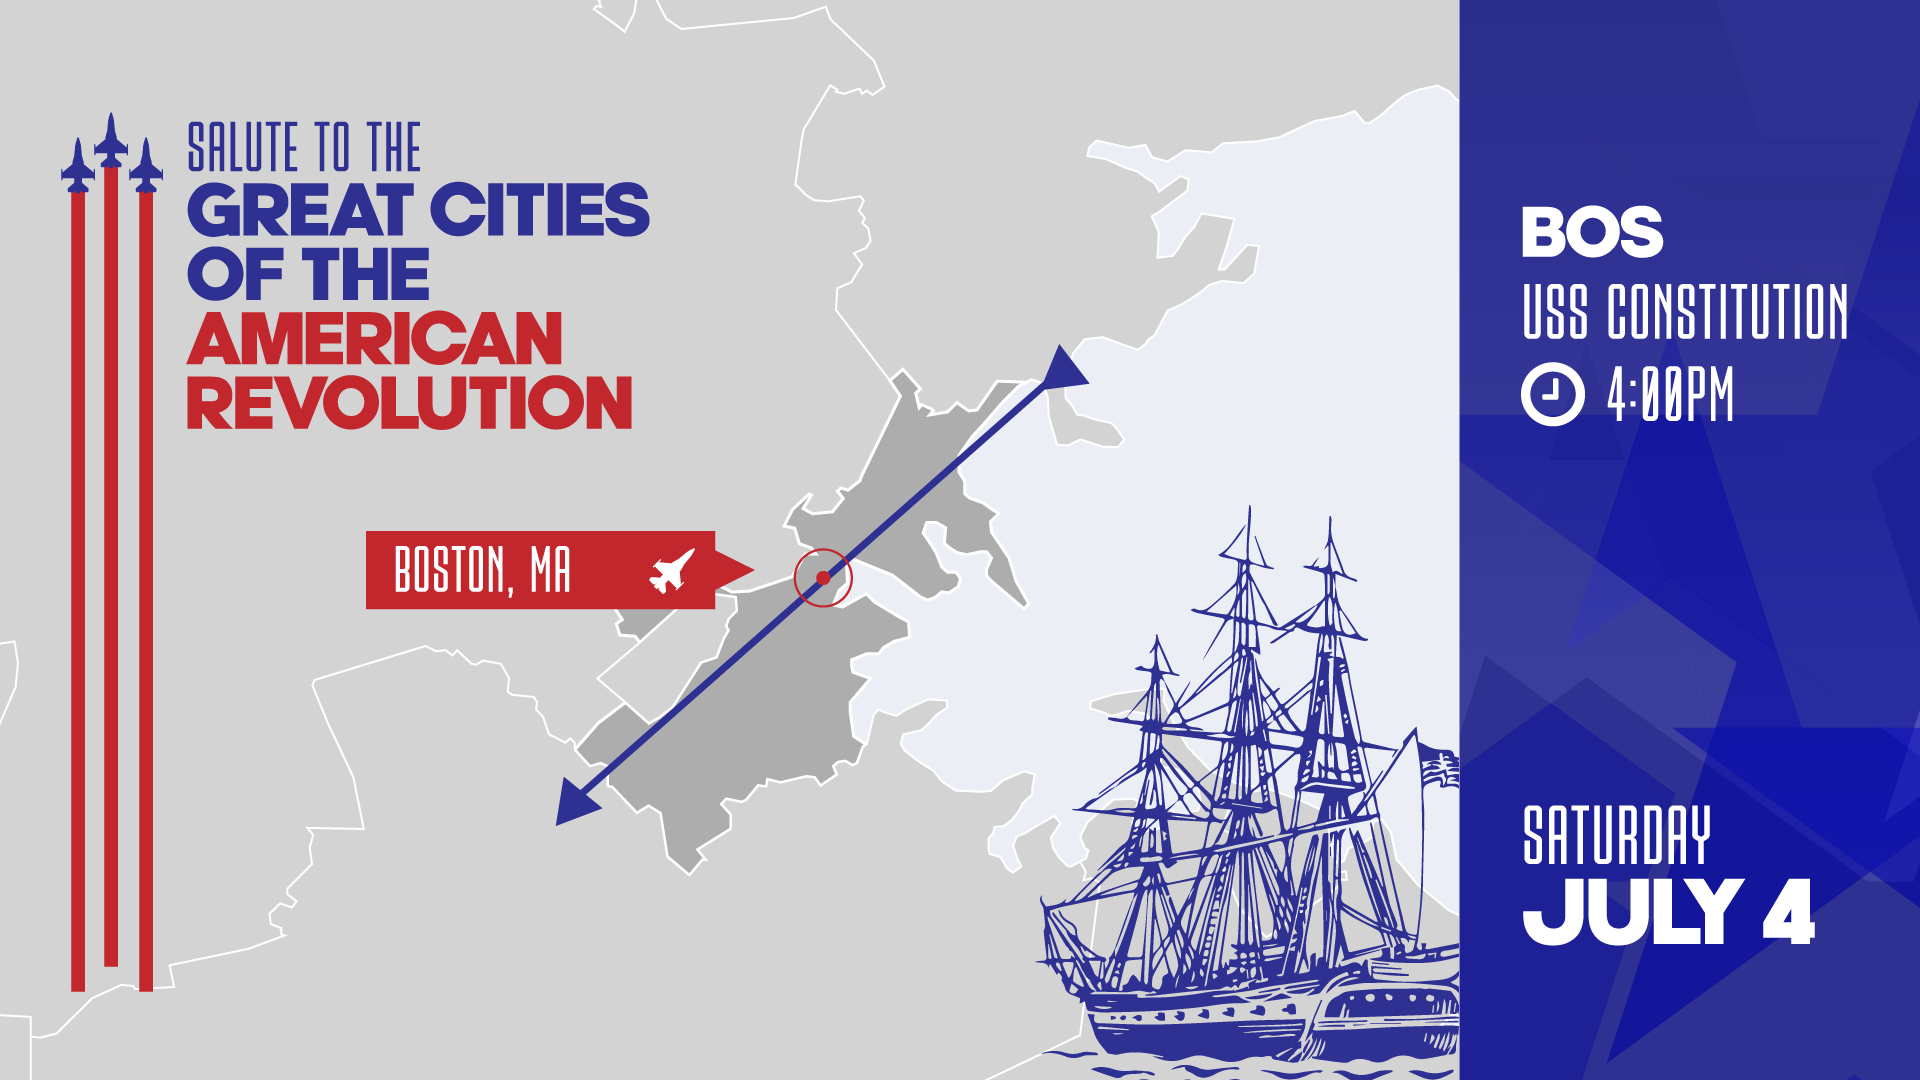 Salute to Great Cities of the American Revolution